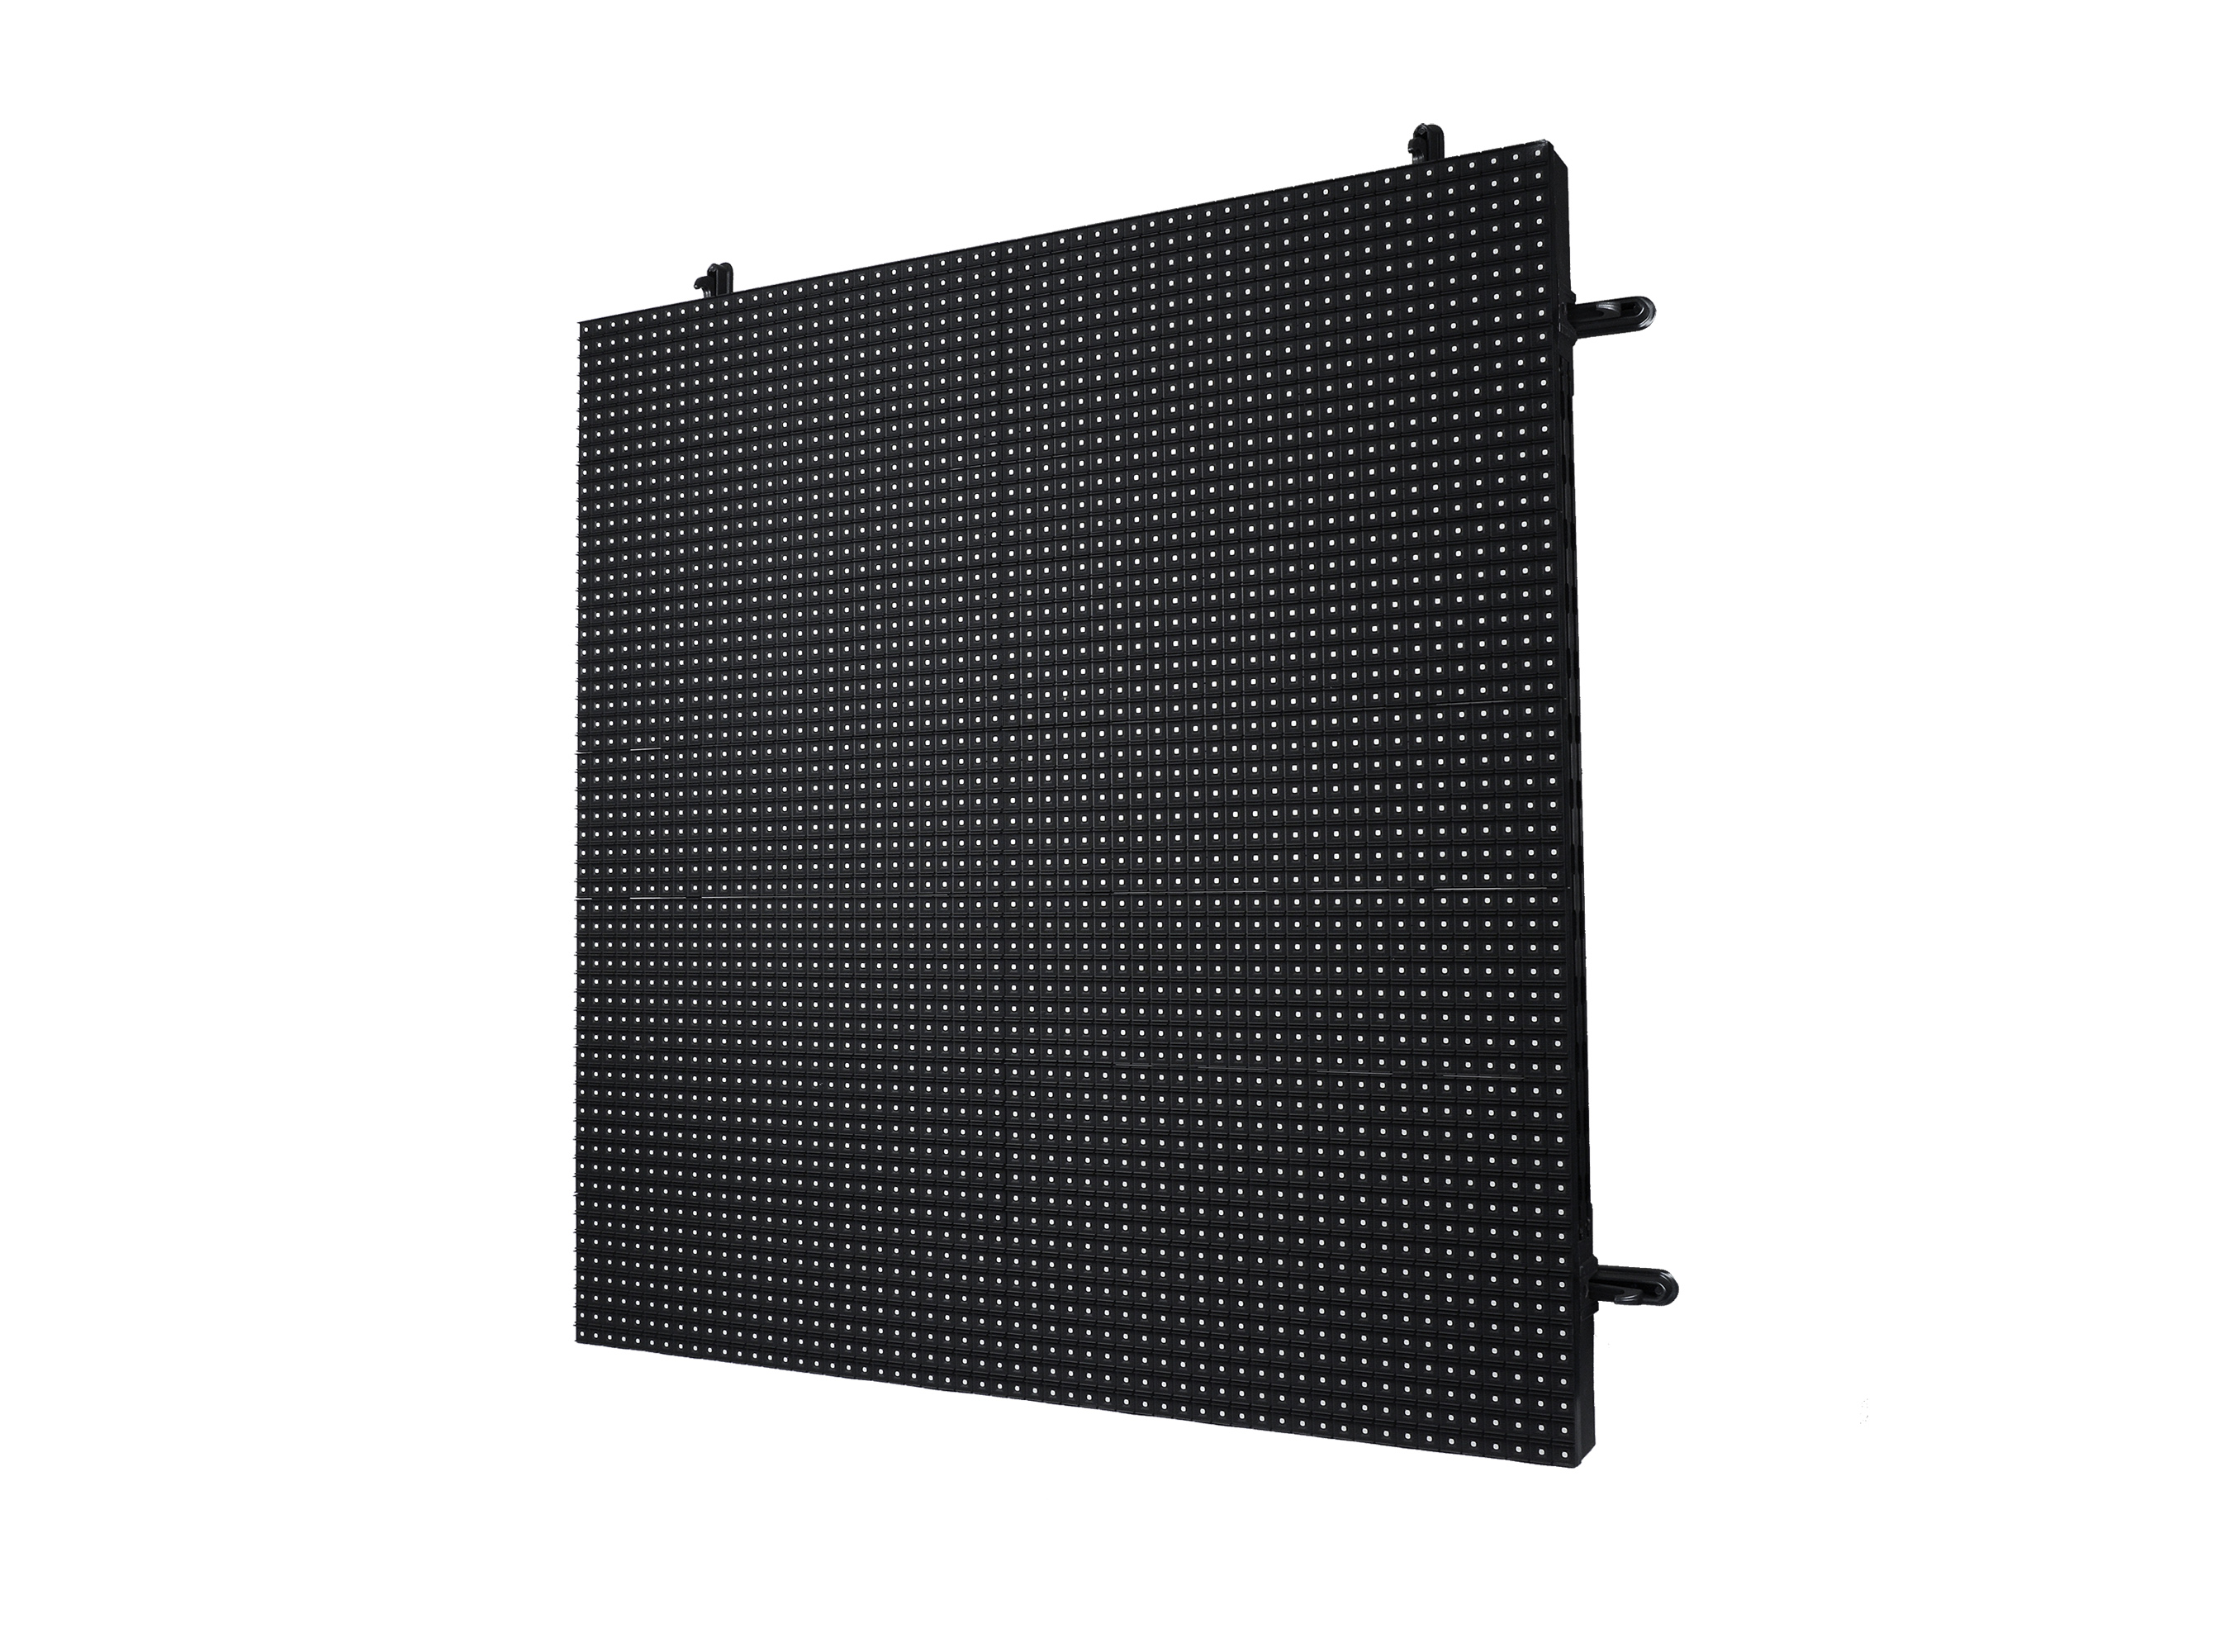 9mm pixel pitch 4 000 nits led display v9m barco for Exterior led screen